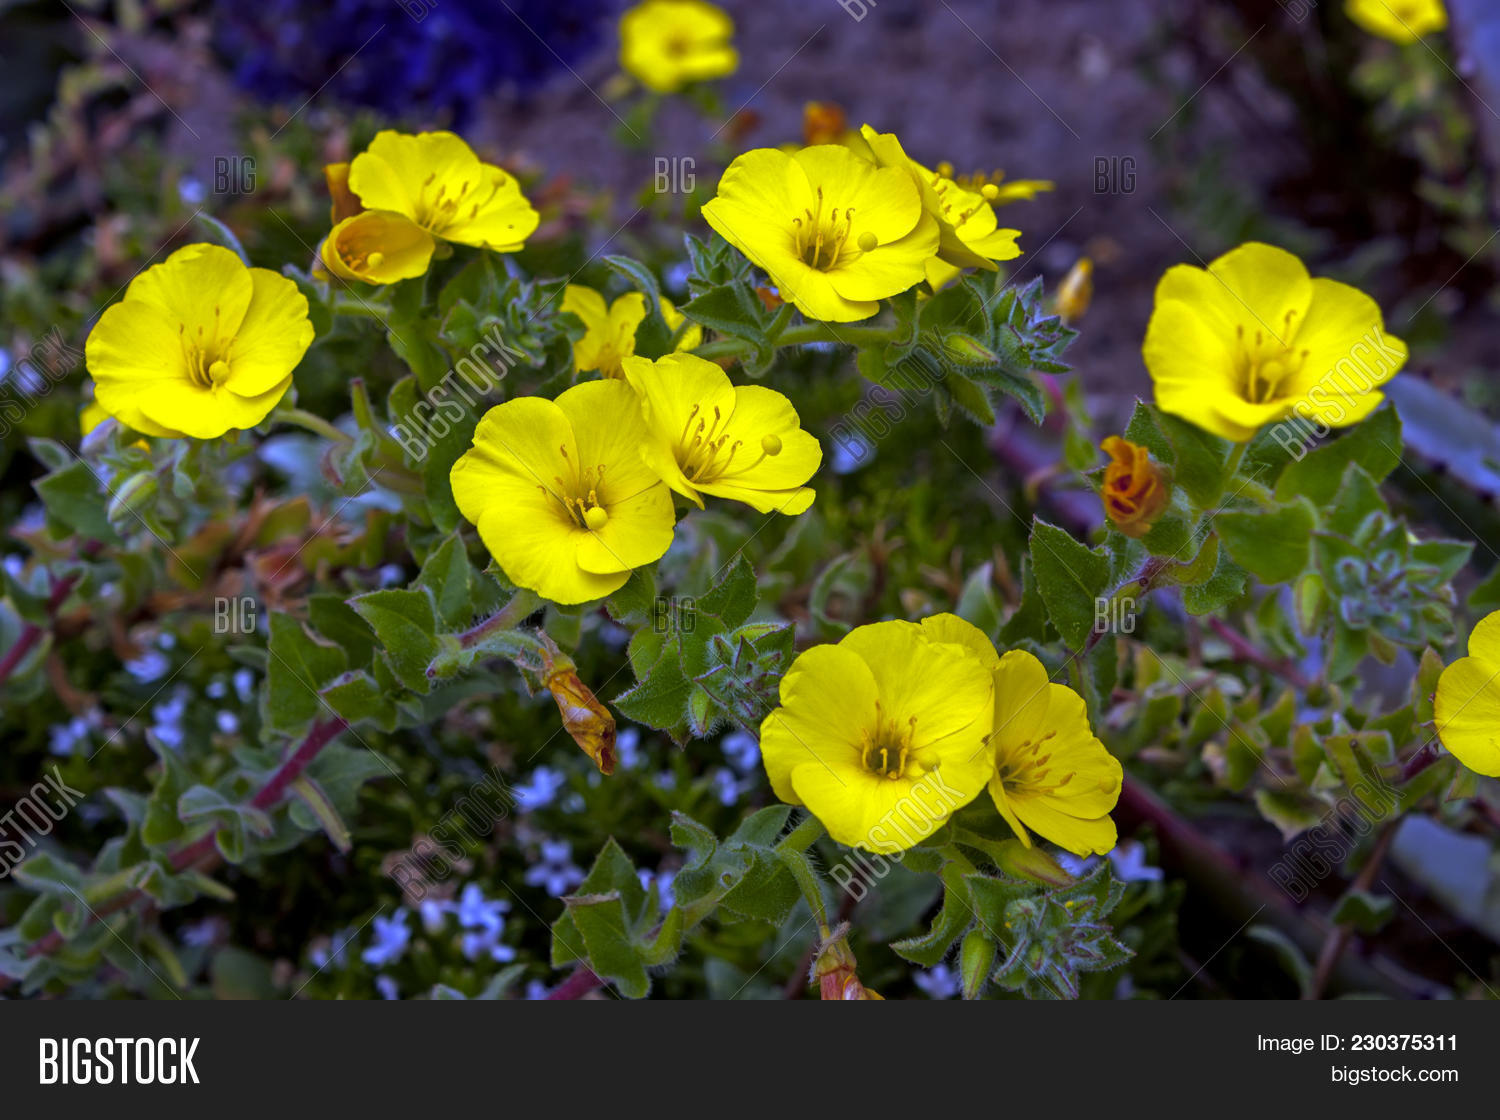 Little Yellow Flowers Image Photo Free Trial Bigstock